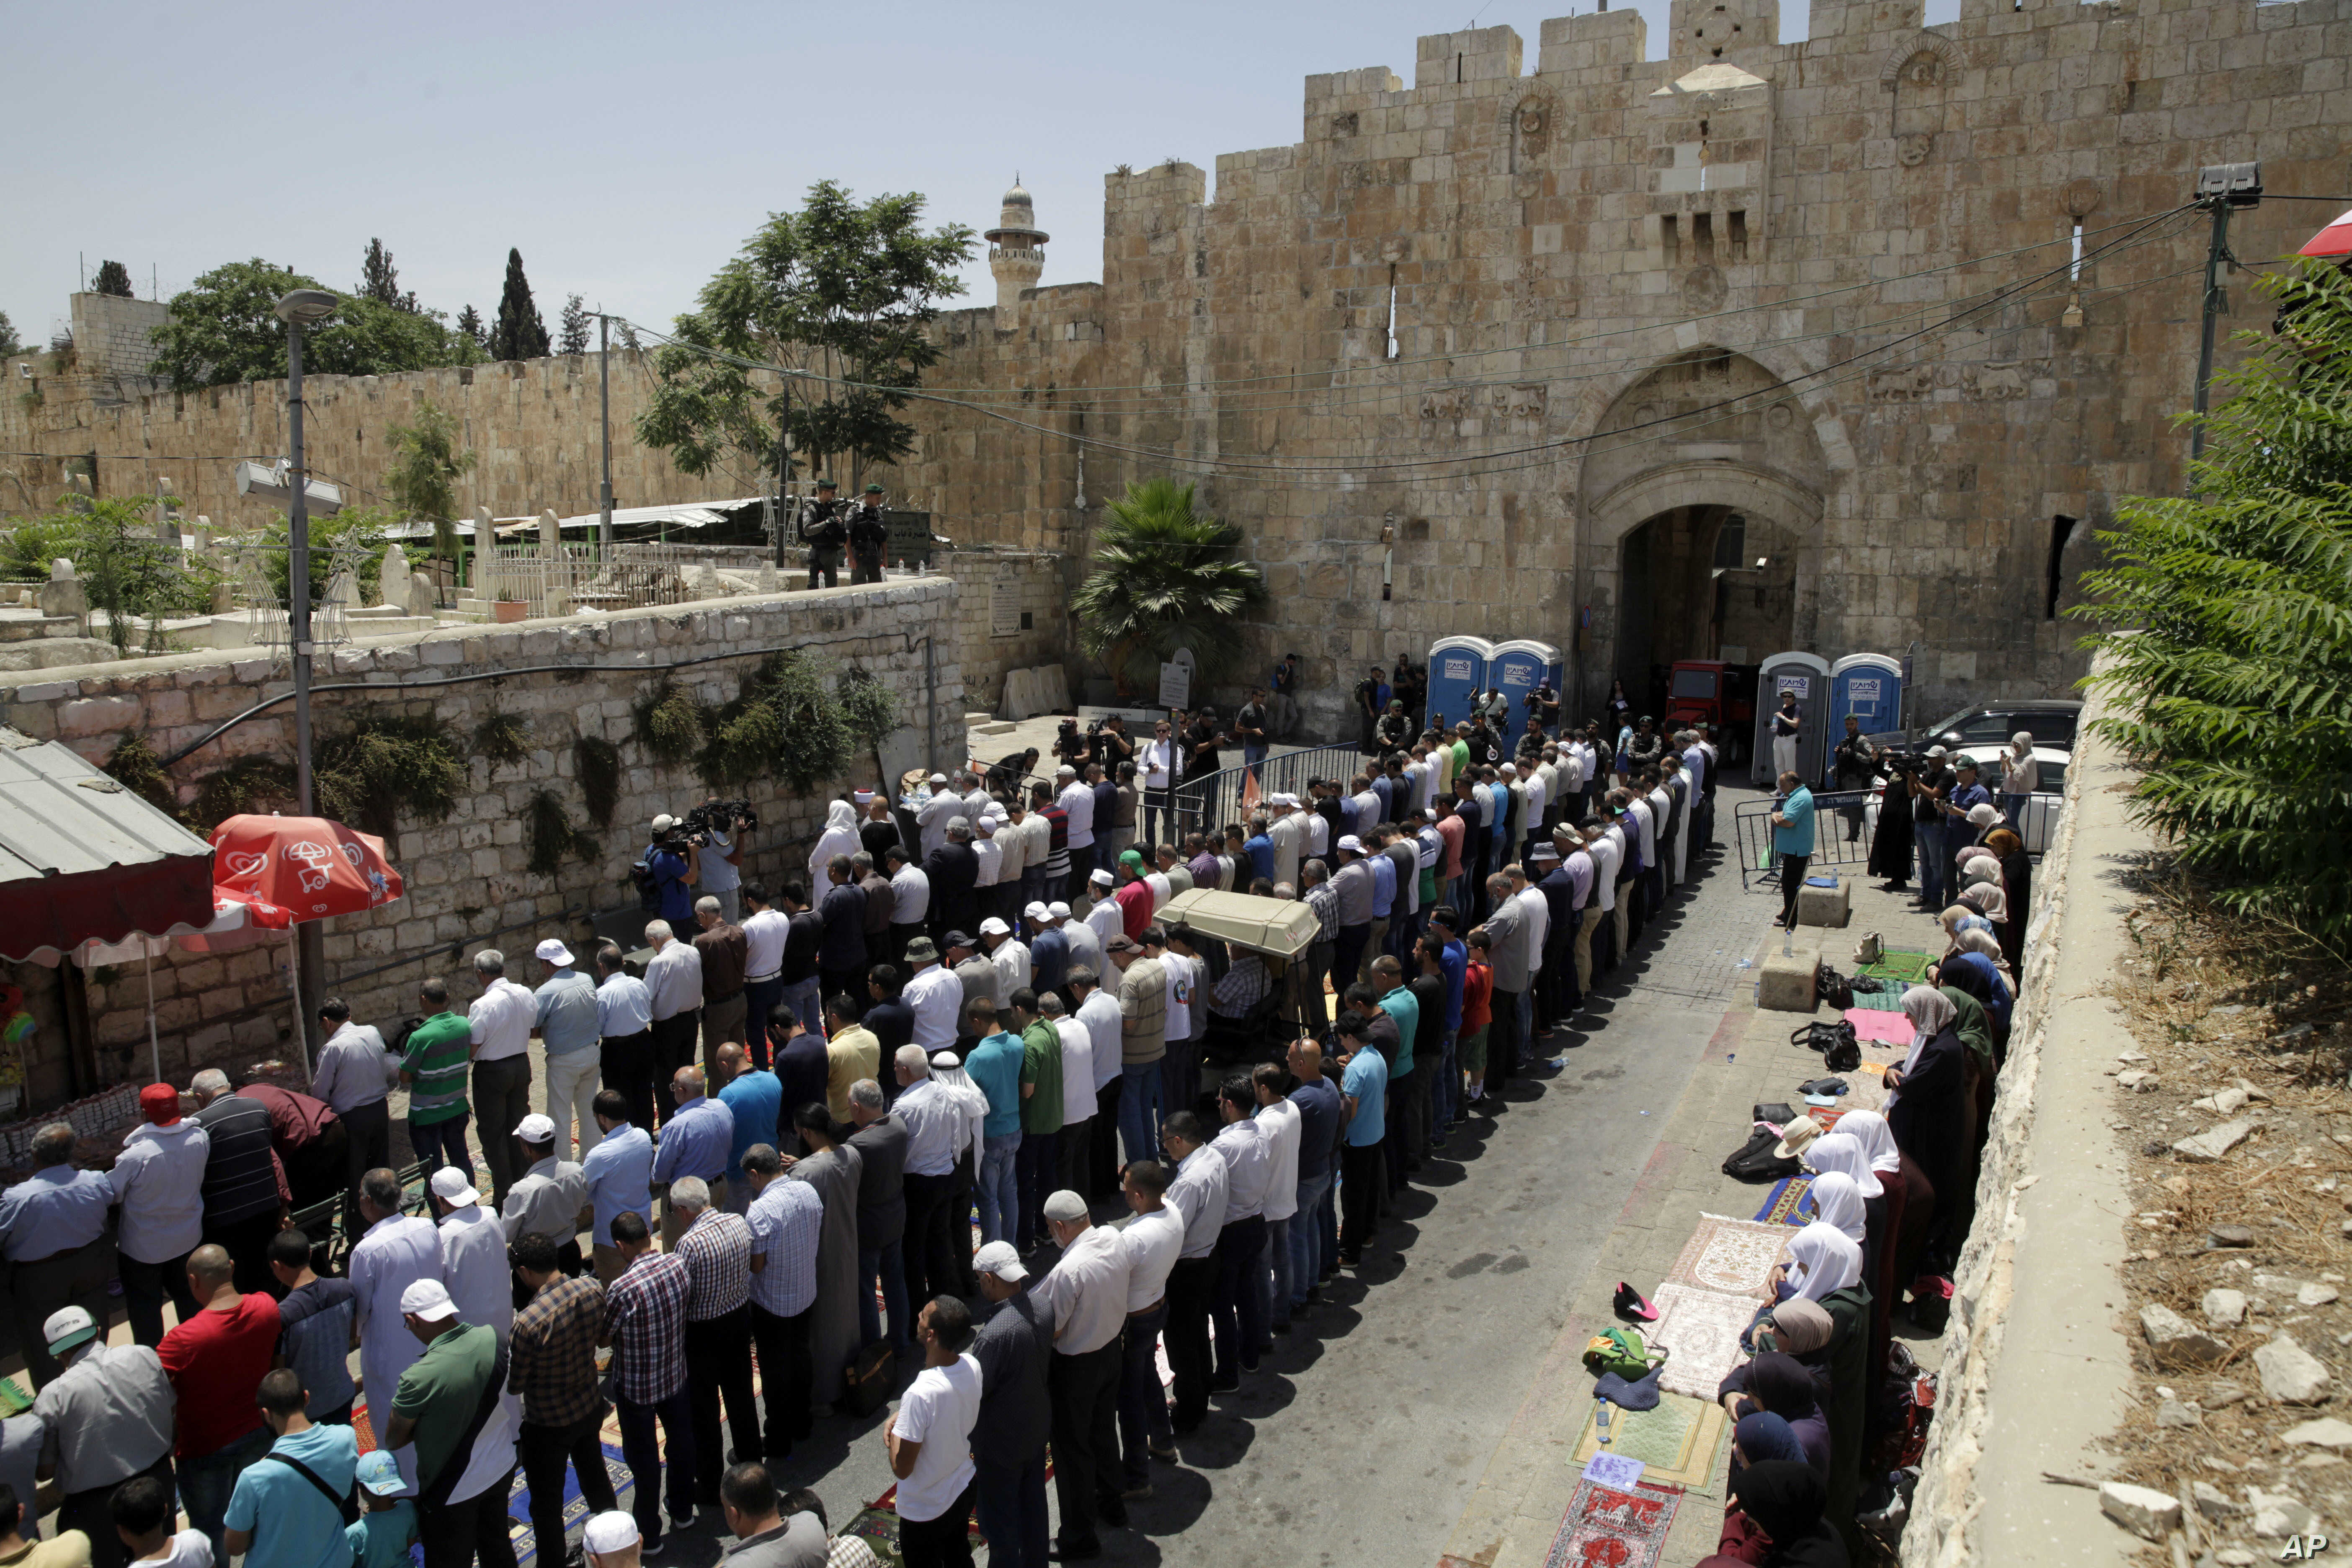 Palestinians pray outside the Lion's Gate in Jerusalem's Old City, Tuesday, July 18, 2017. A dispute over metal detectors has escalated into a new showdown between Israel and the Muslim world over a contested Jerusalem shrine that has been at the cen...